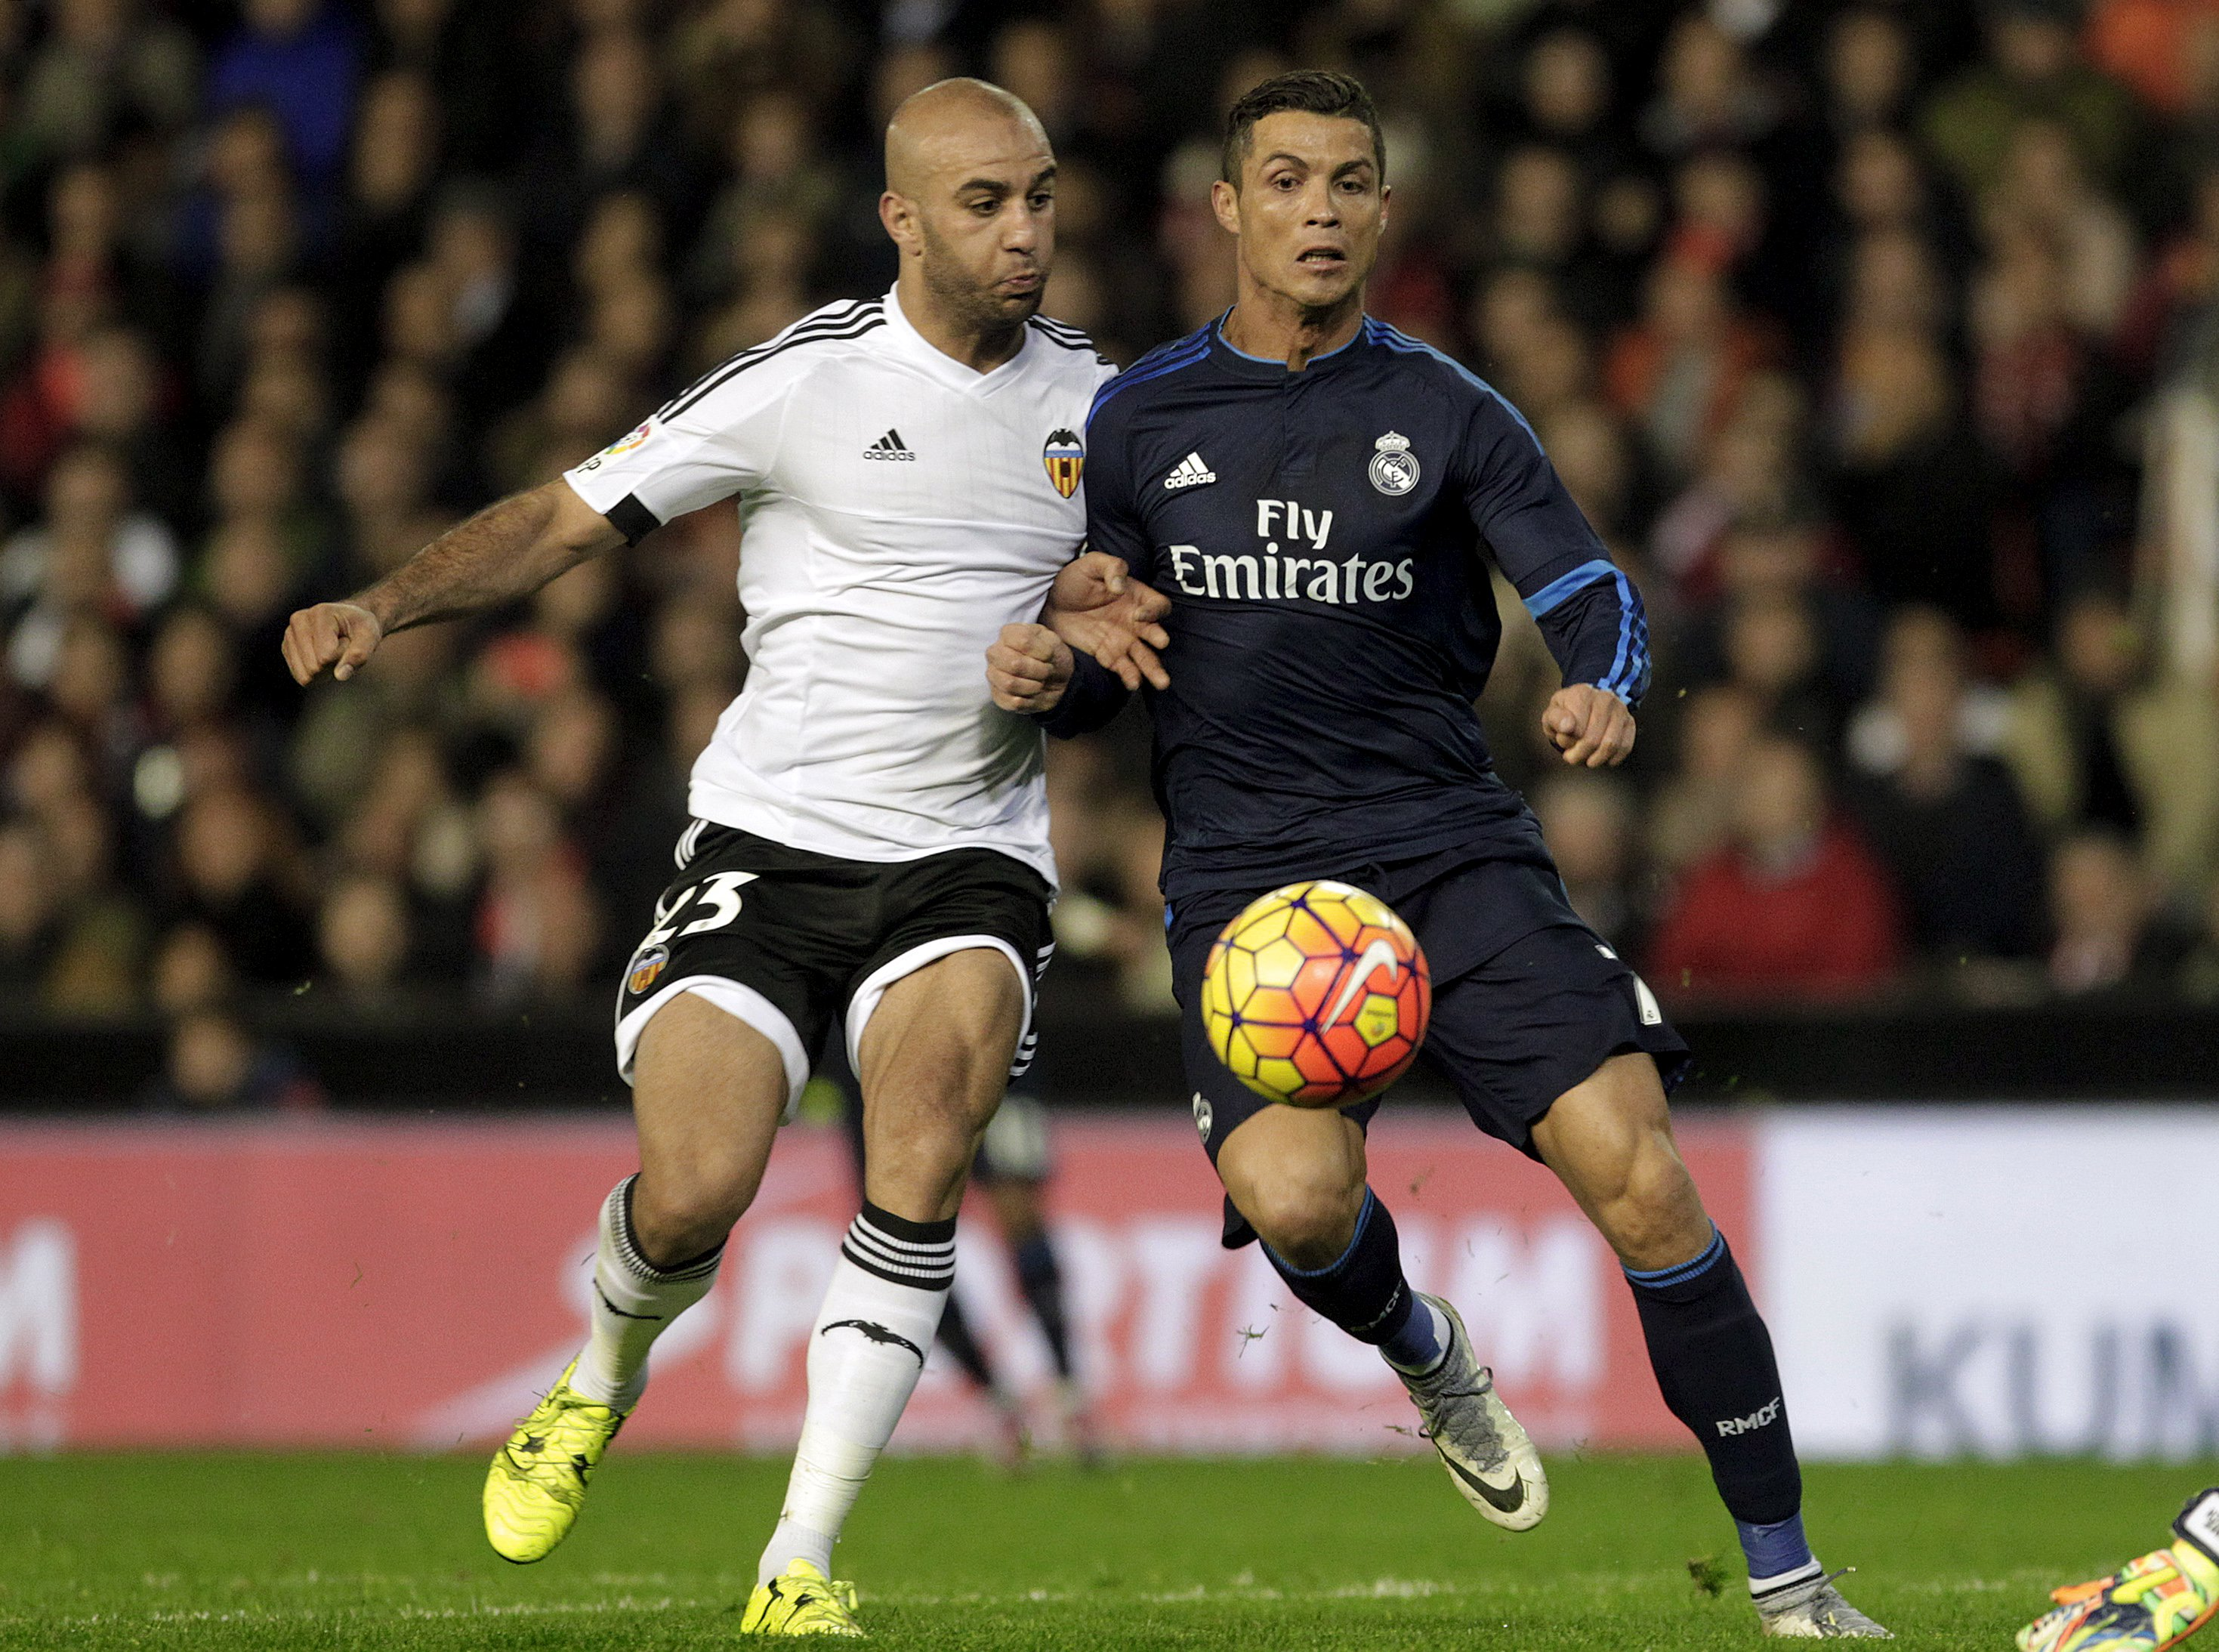 Real Madrid's Cristiano Ronaldo (R) and Valencia's Aymen Abdennour in action during La Liga game at Mestalla Stadium on Monday, January 3, 2016. Photo: Reuters